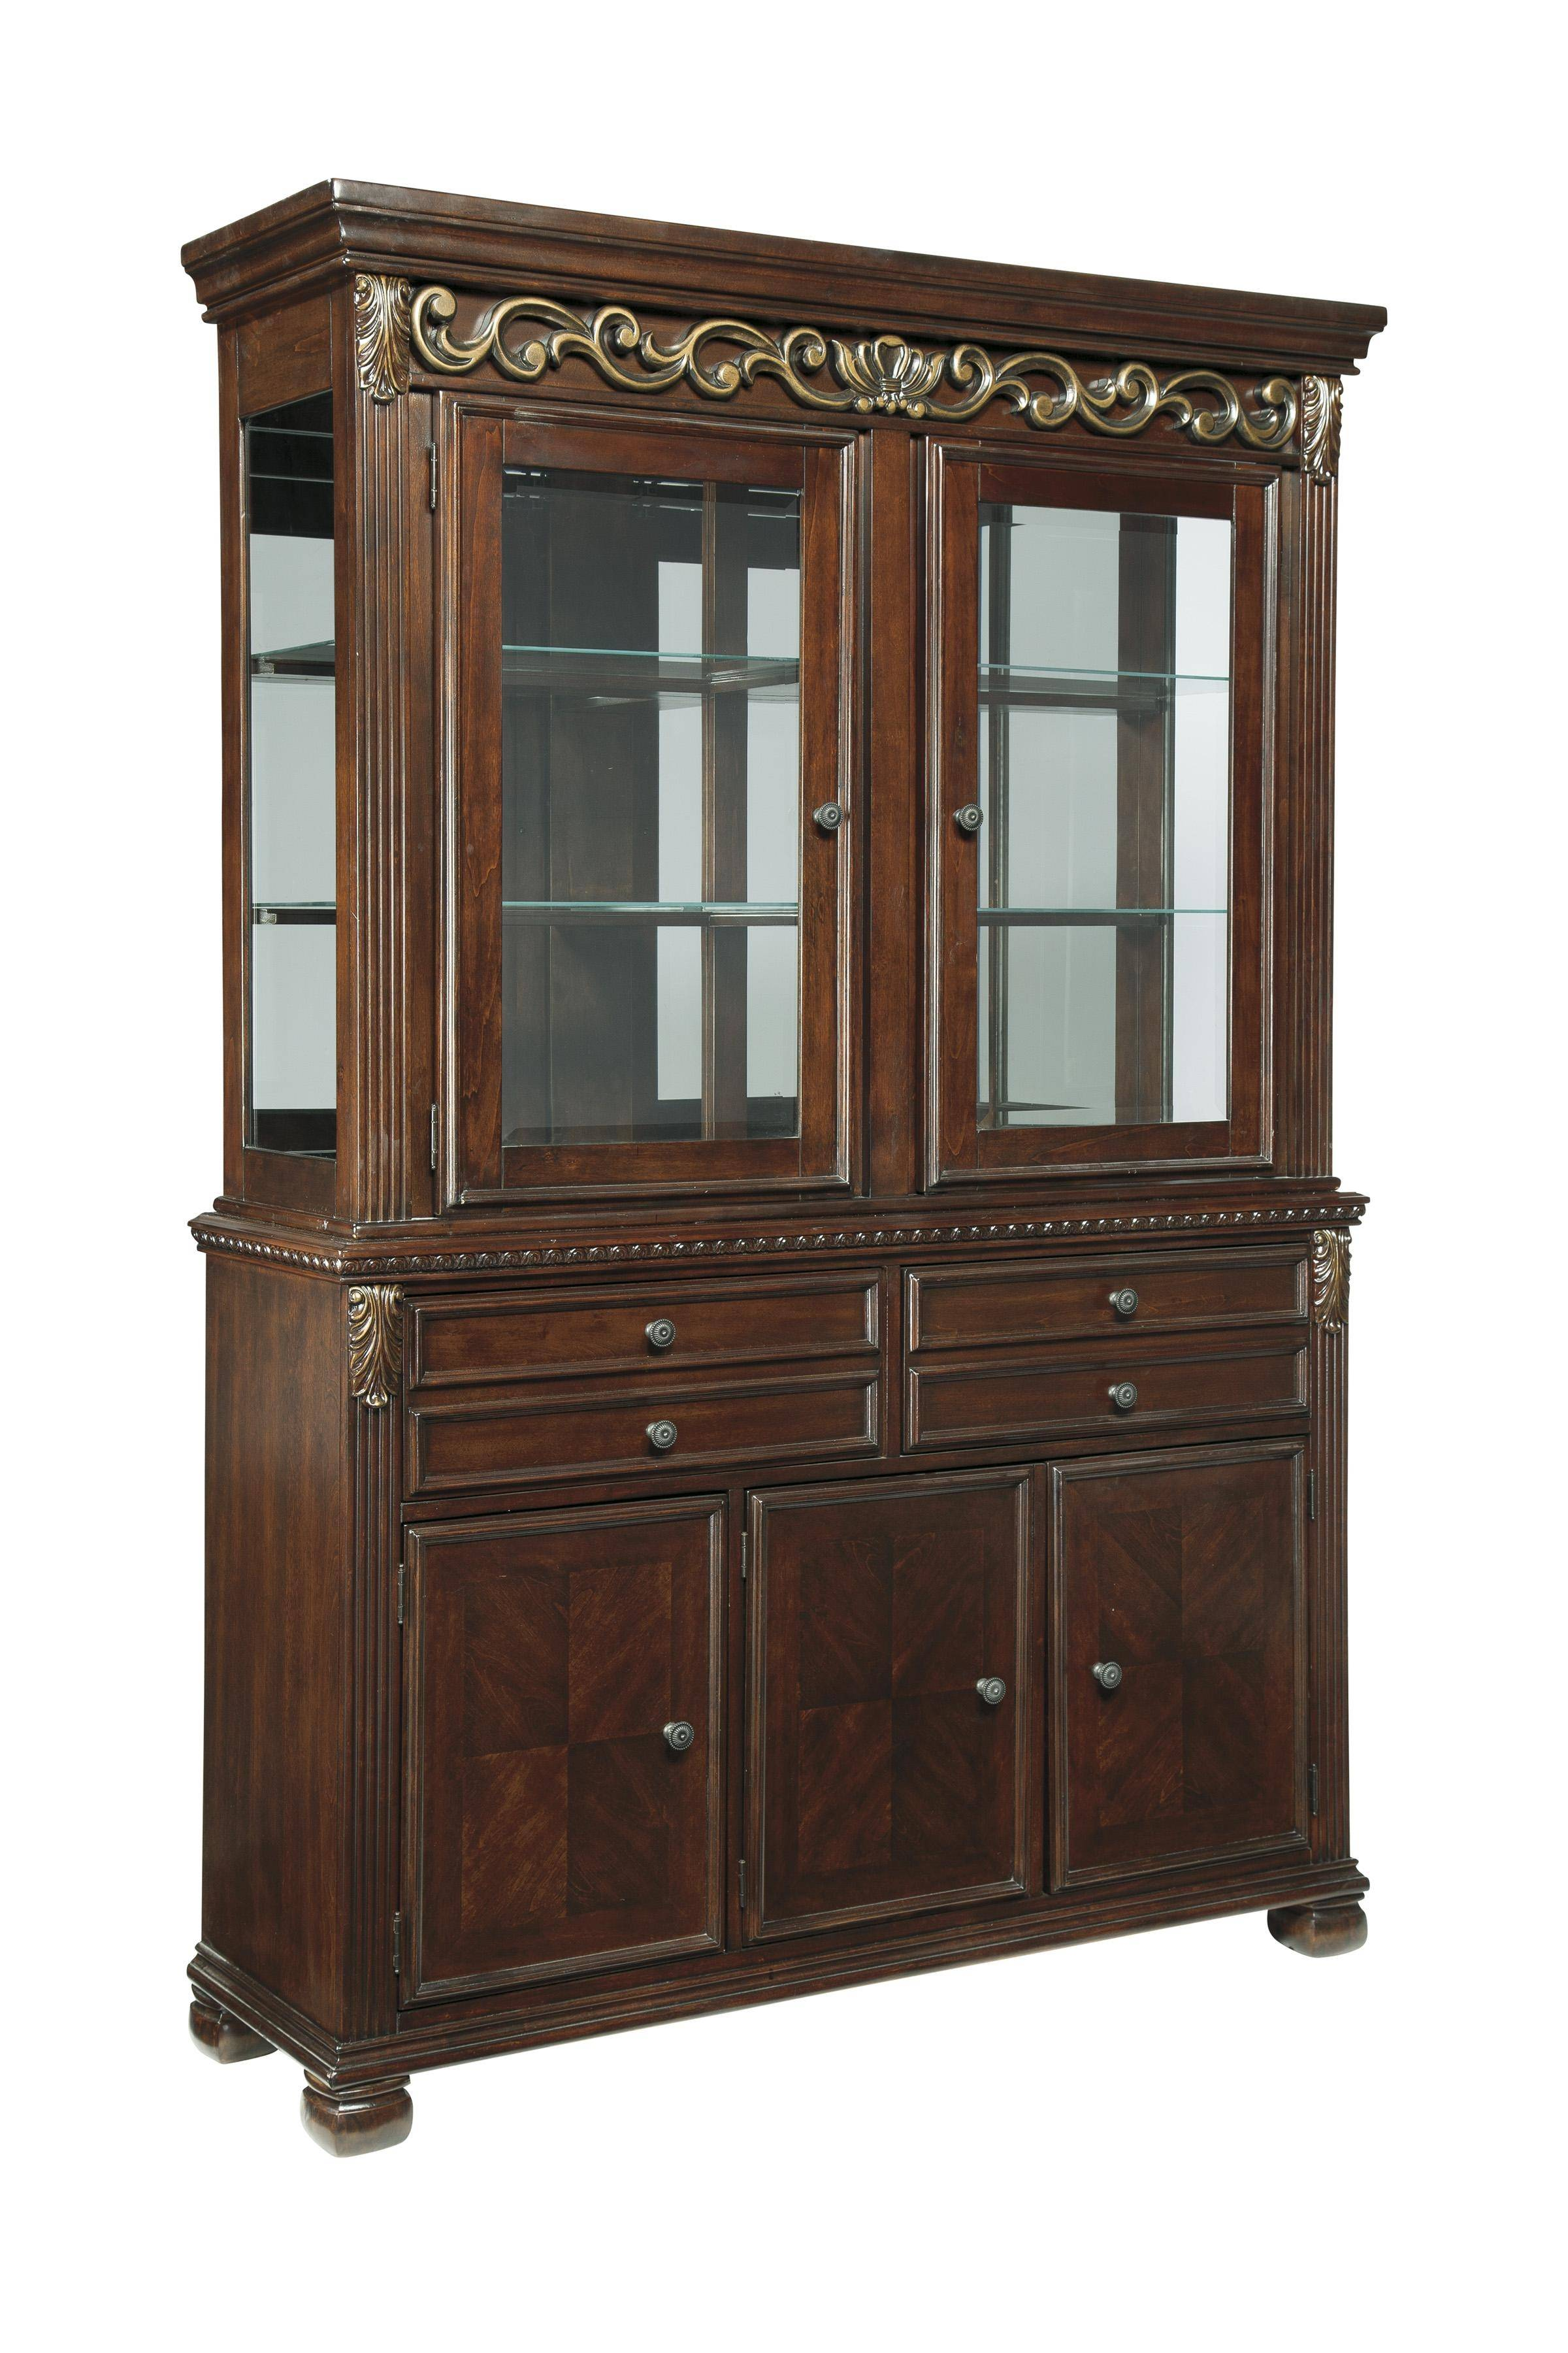 Ashley Leahlyn D626 Dining Room Set 9pcs In Reddish Brown With Hutch For Sale